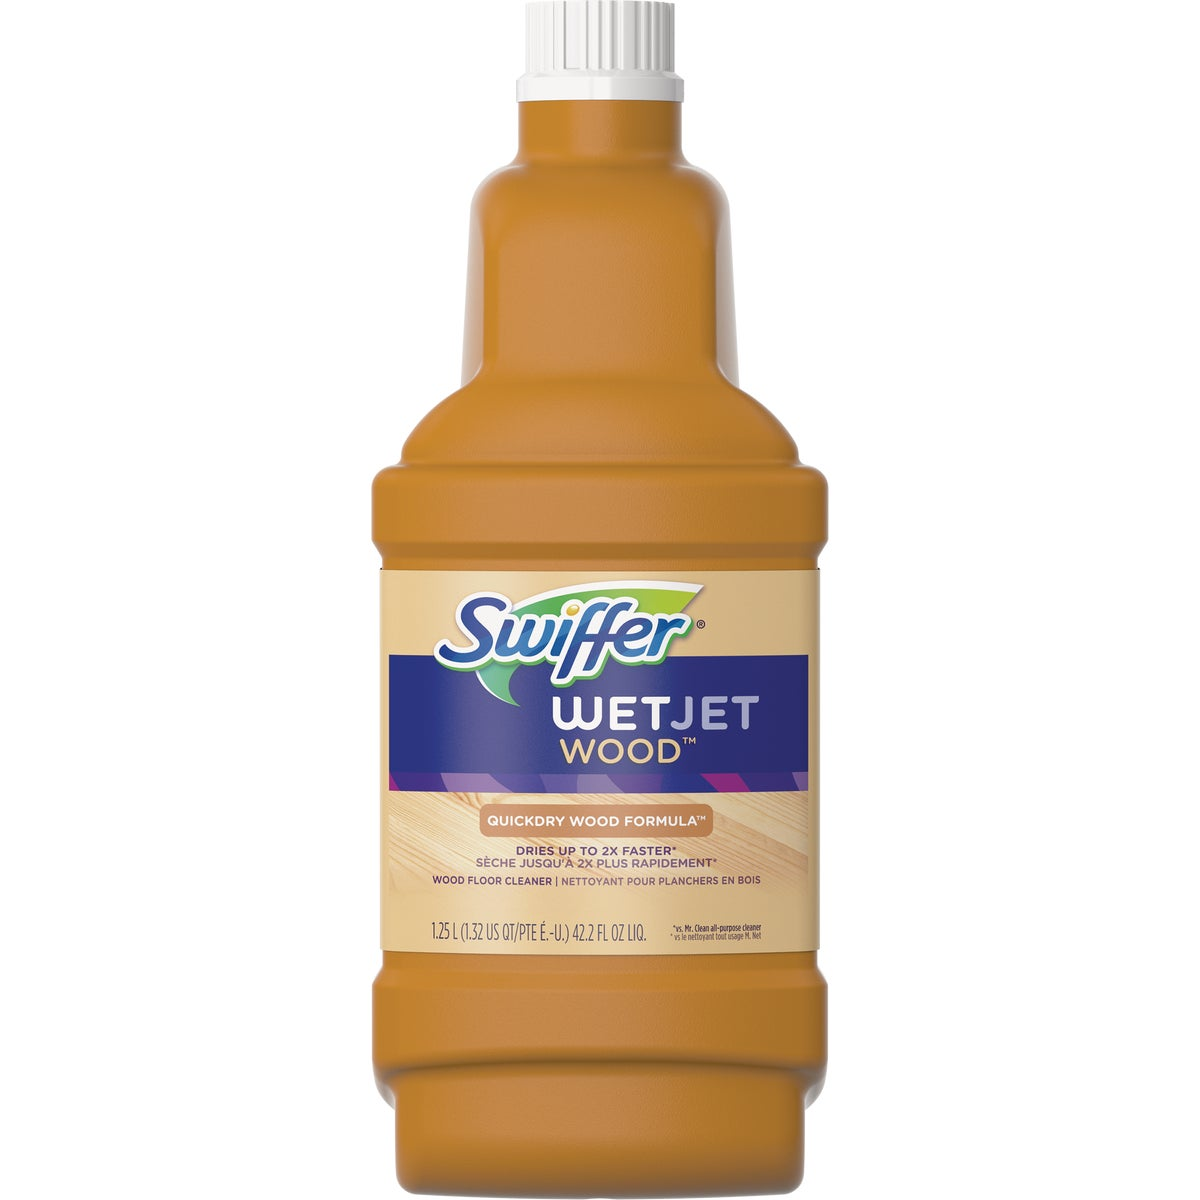 WOOD WETJET CLEANER